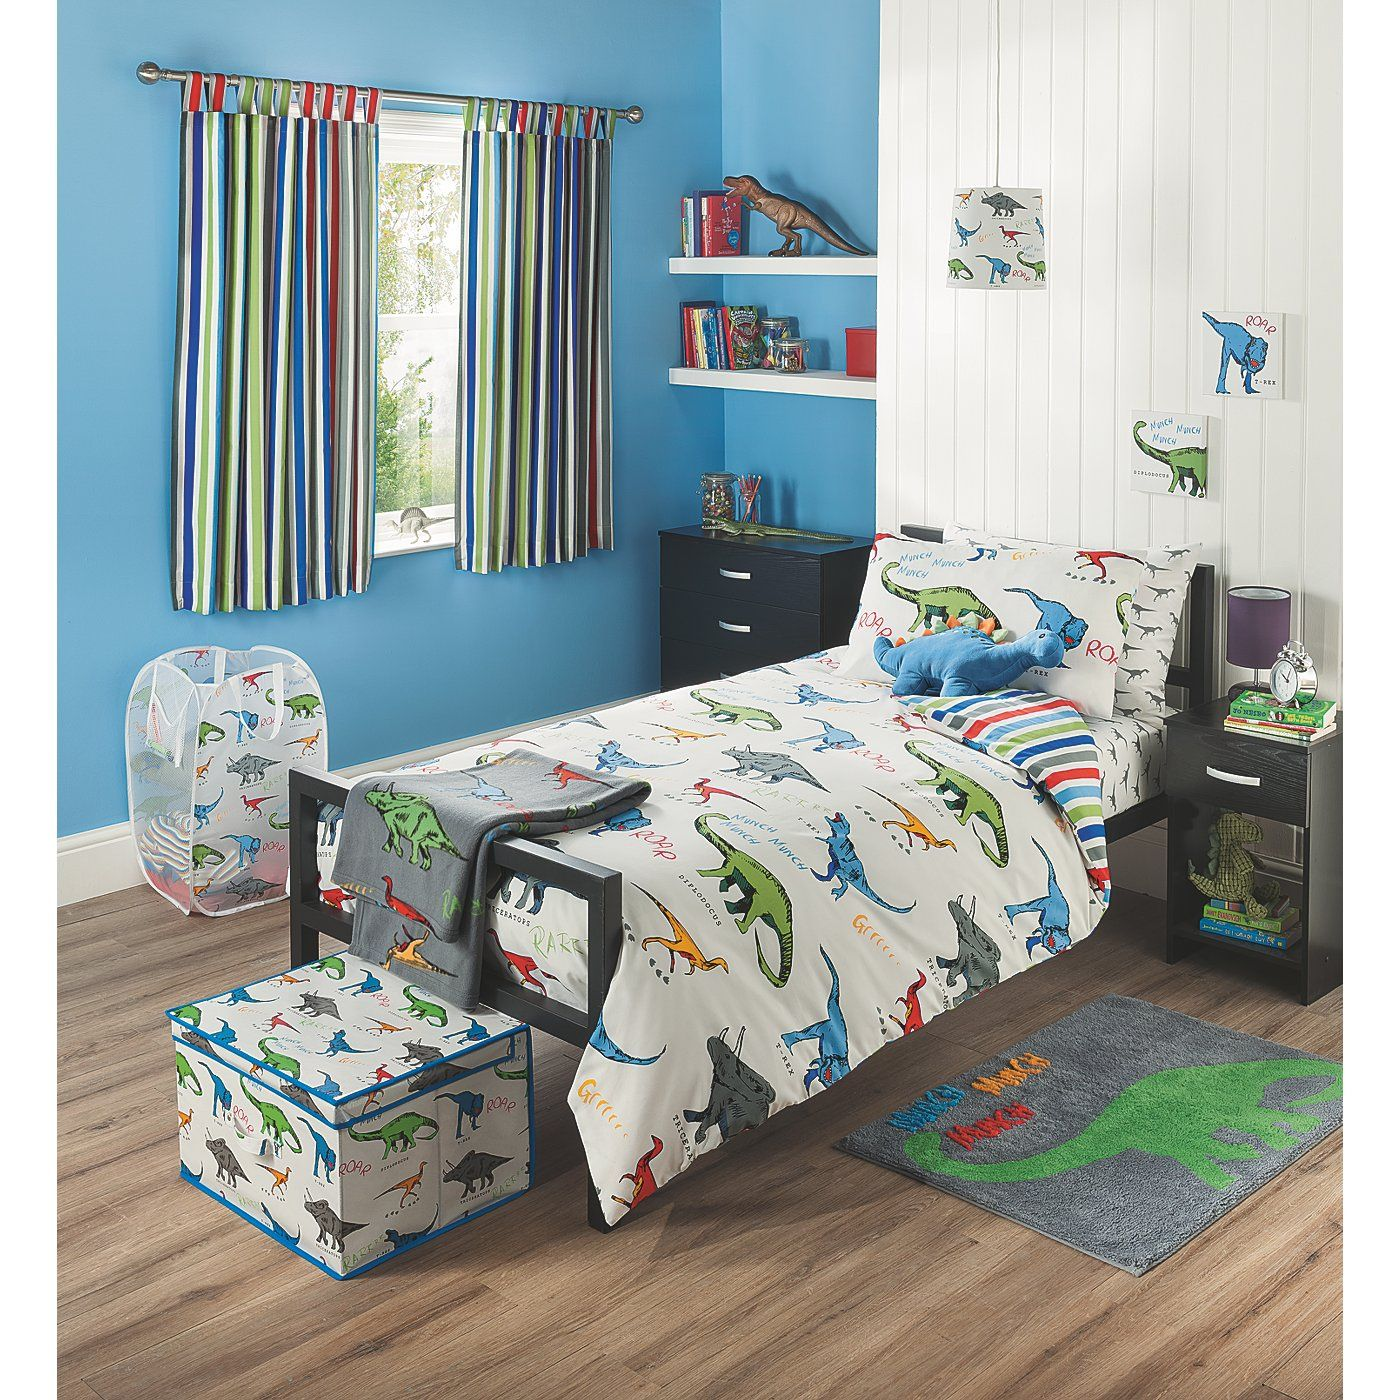 2019 Dinosaur Boys Room Organizing Ideas For Bedrooms Check More At Http Davidhyounglaw Com 50 Dinosaur Bedroom Boy Toddler Bedroom Dinosaur Room